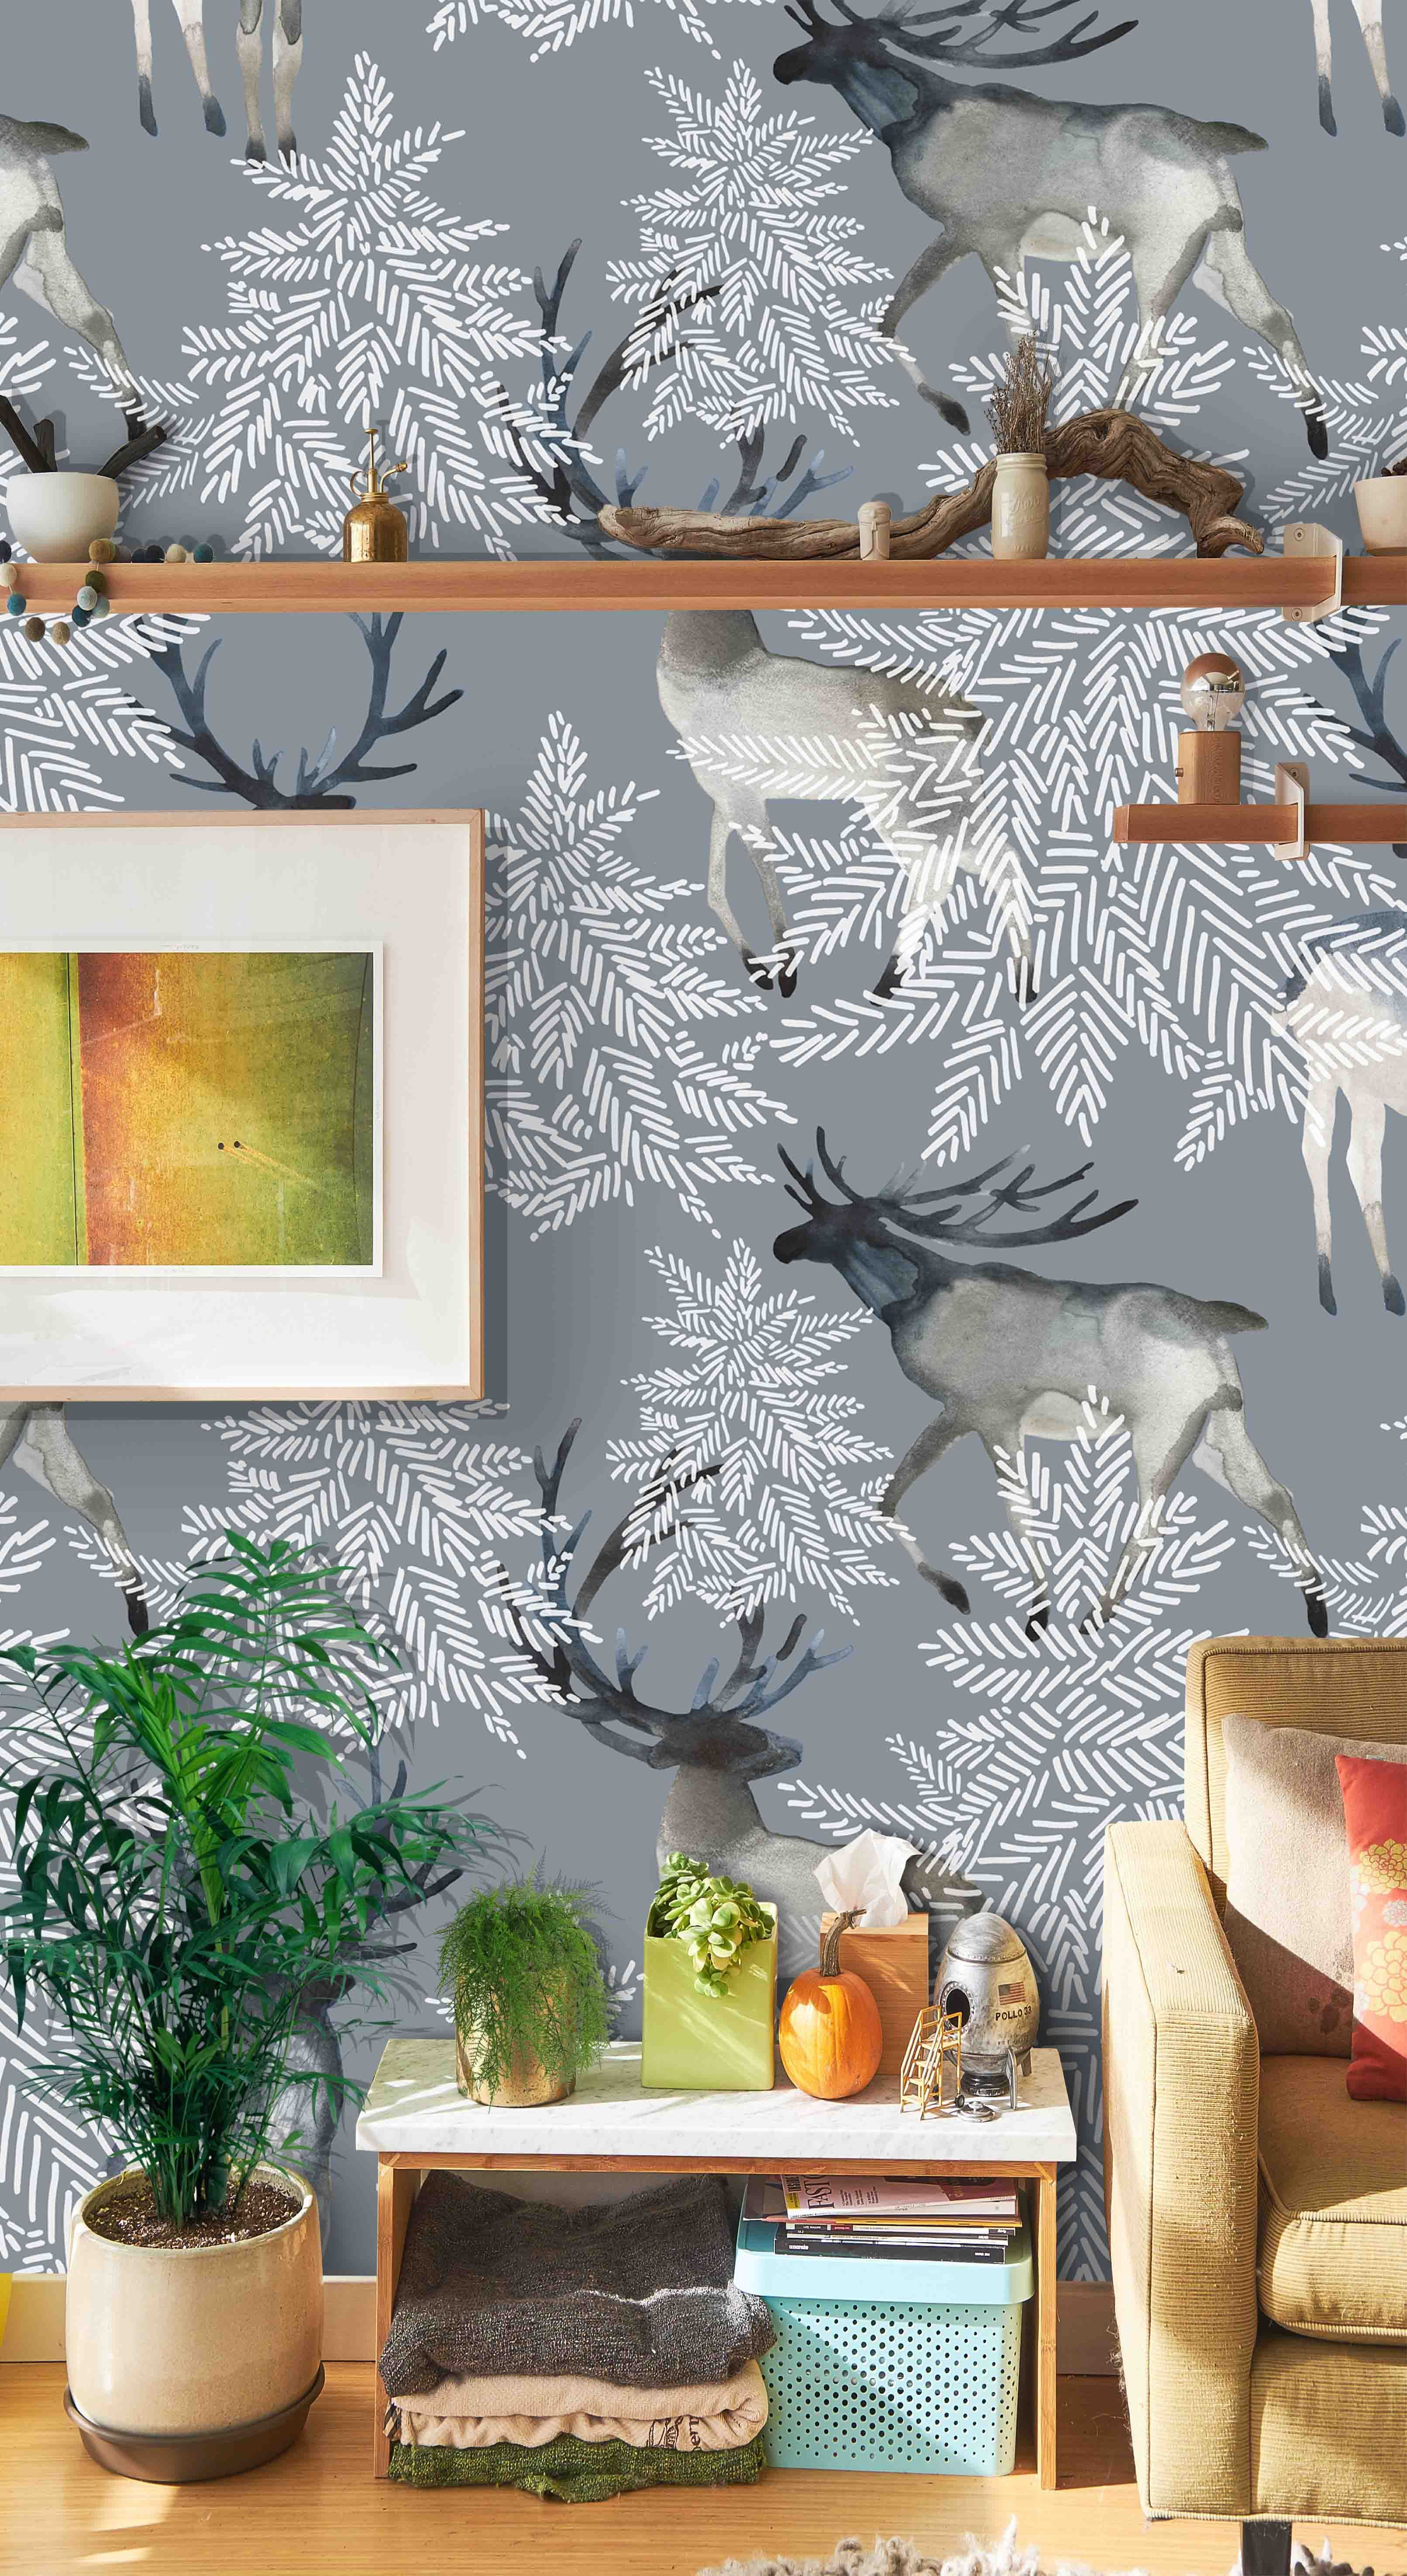 Holidays Wall Sticker Holiday Cozy Home Decor Wallpaper By Green Plant Print Home Decor Home Decor Decals Cozy House